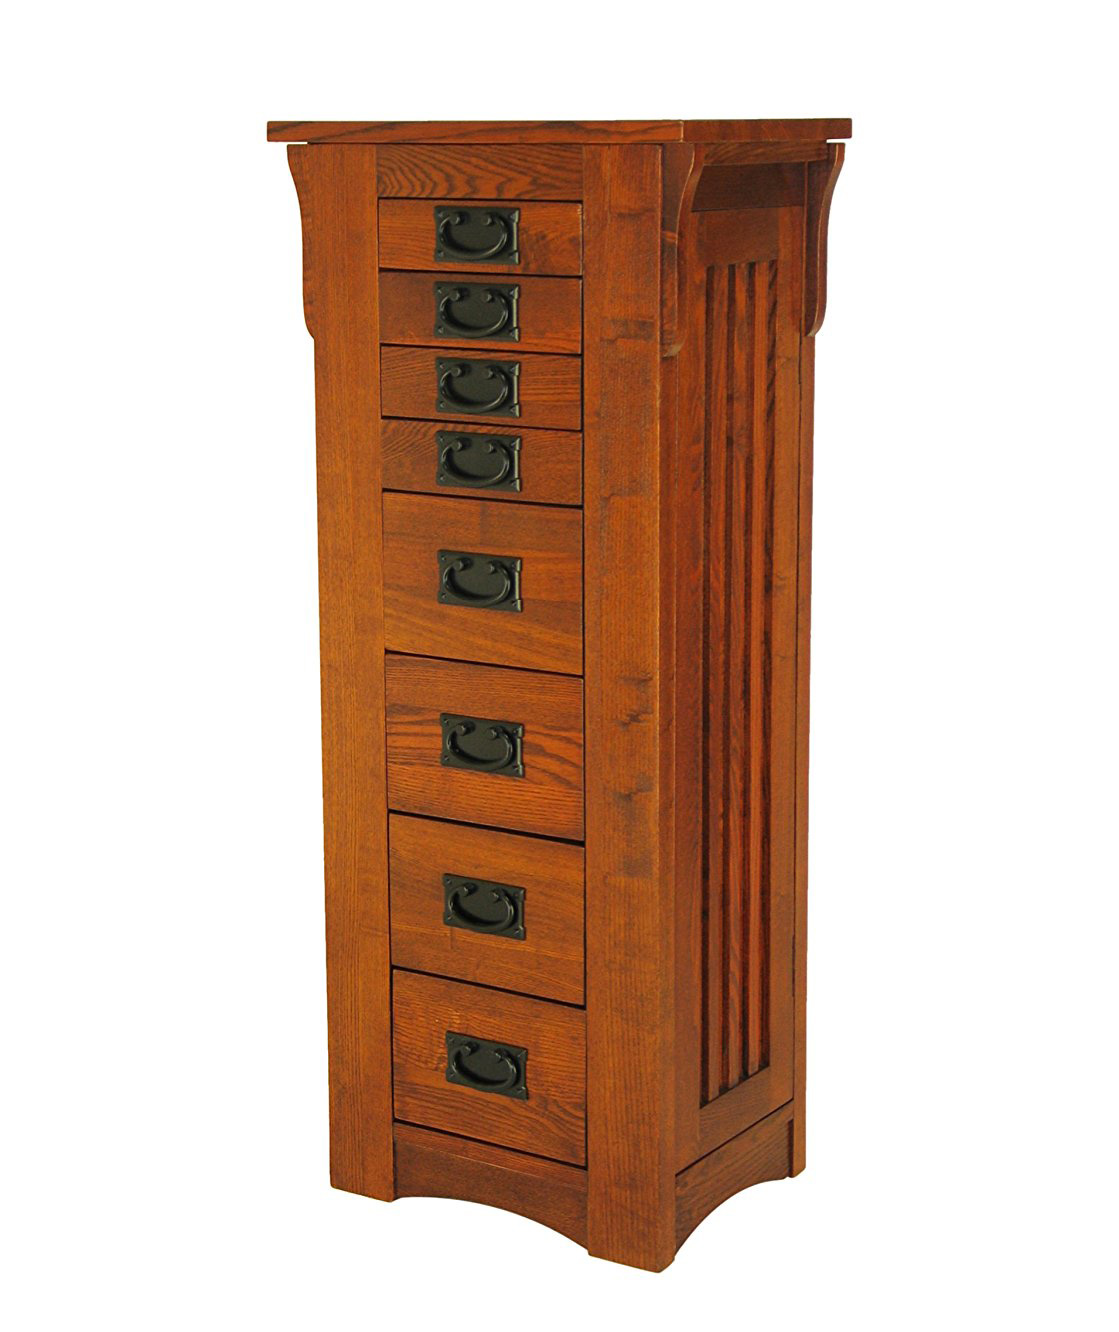 Simple Tower Style Oak Floor Standing Jewelry Armoire